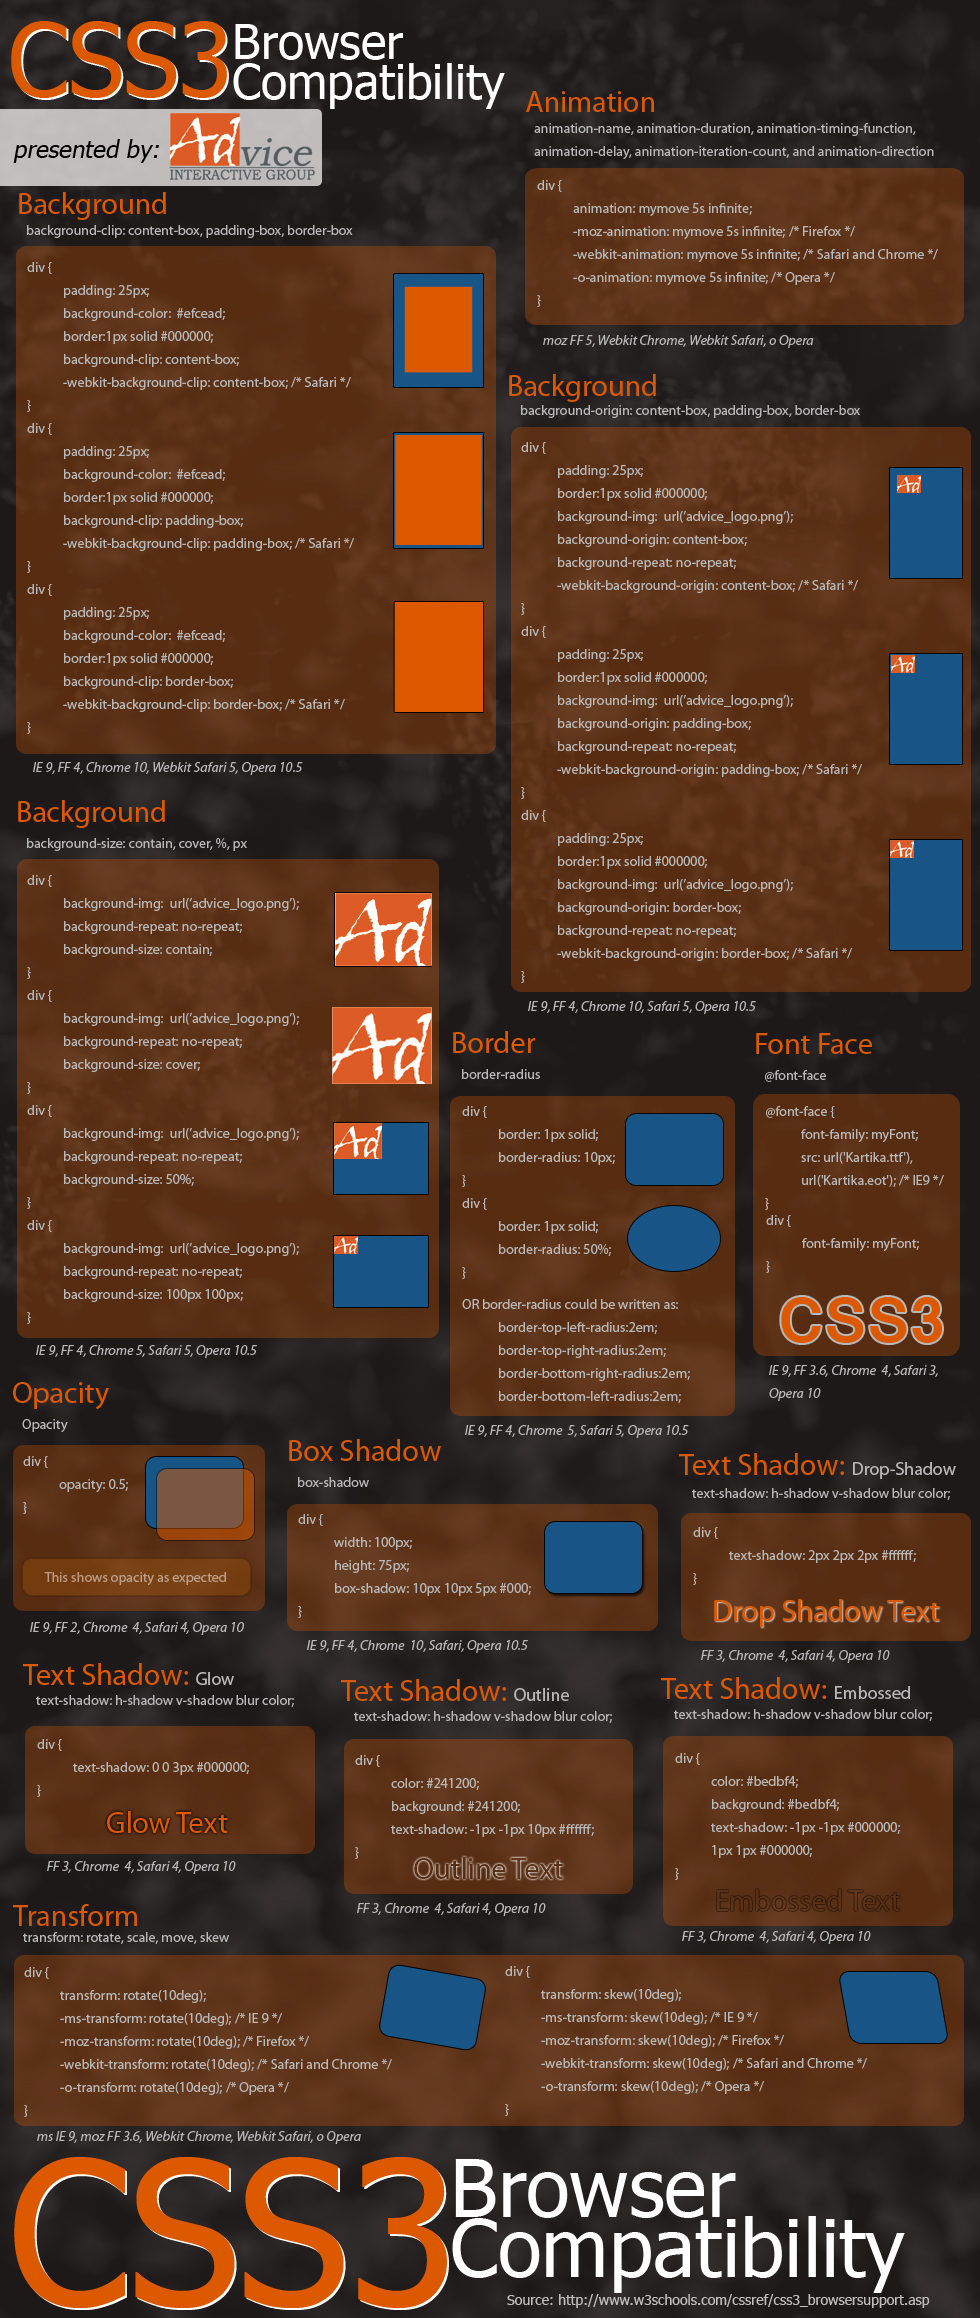 CSS3 Browser Compatibility Infographic by Advice Interactive Group